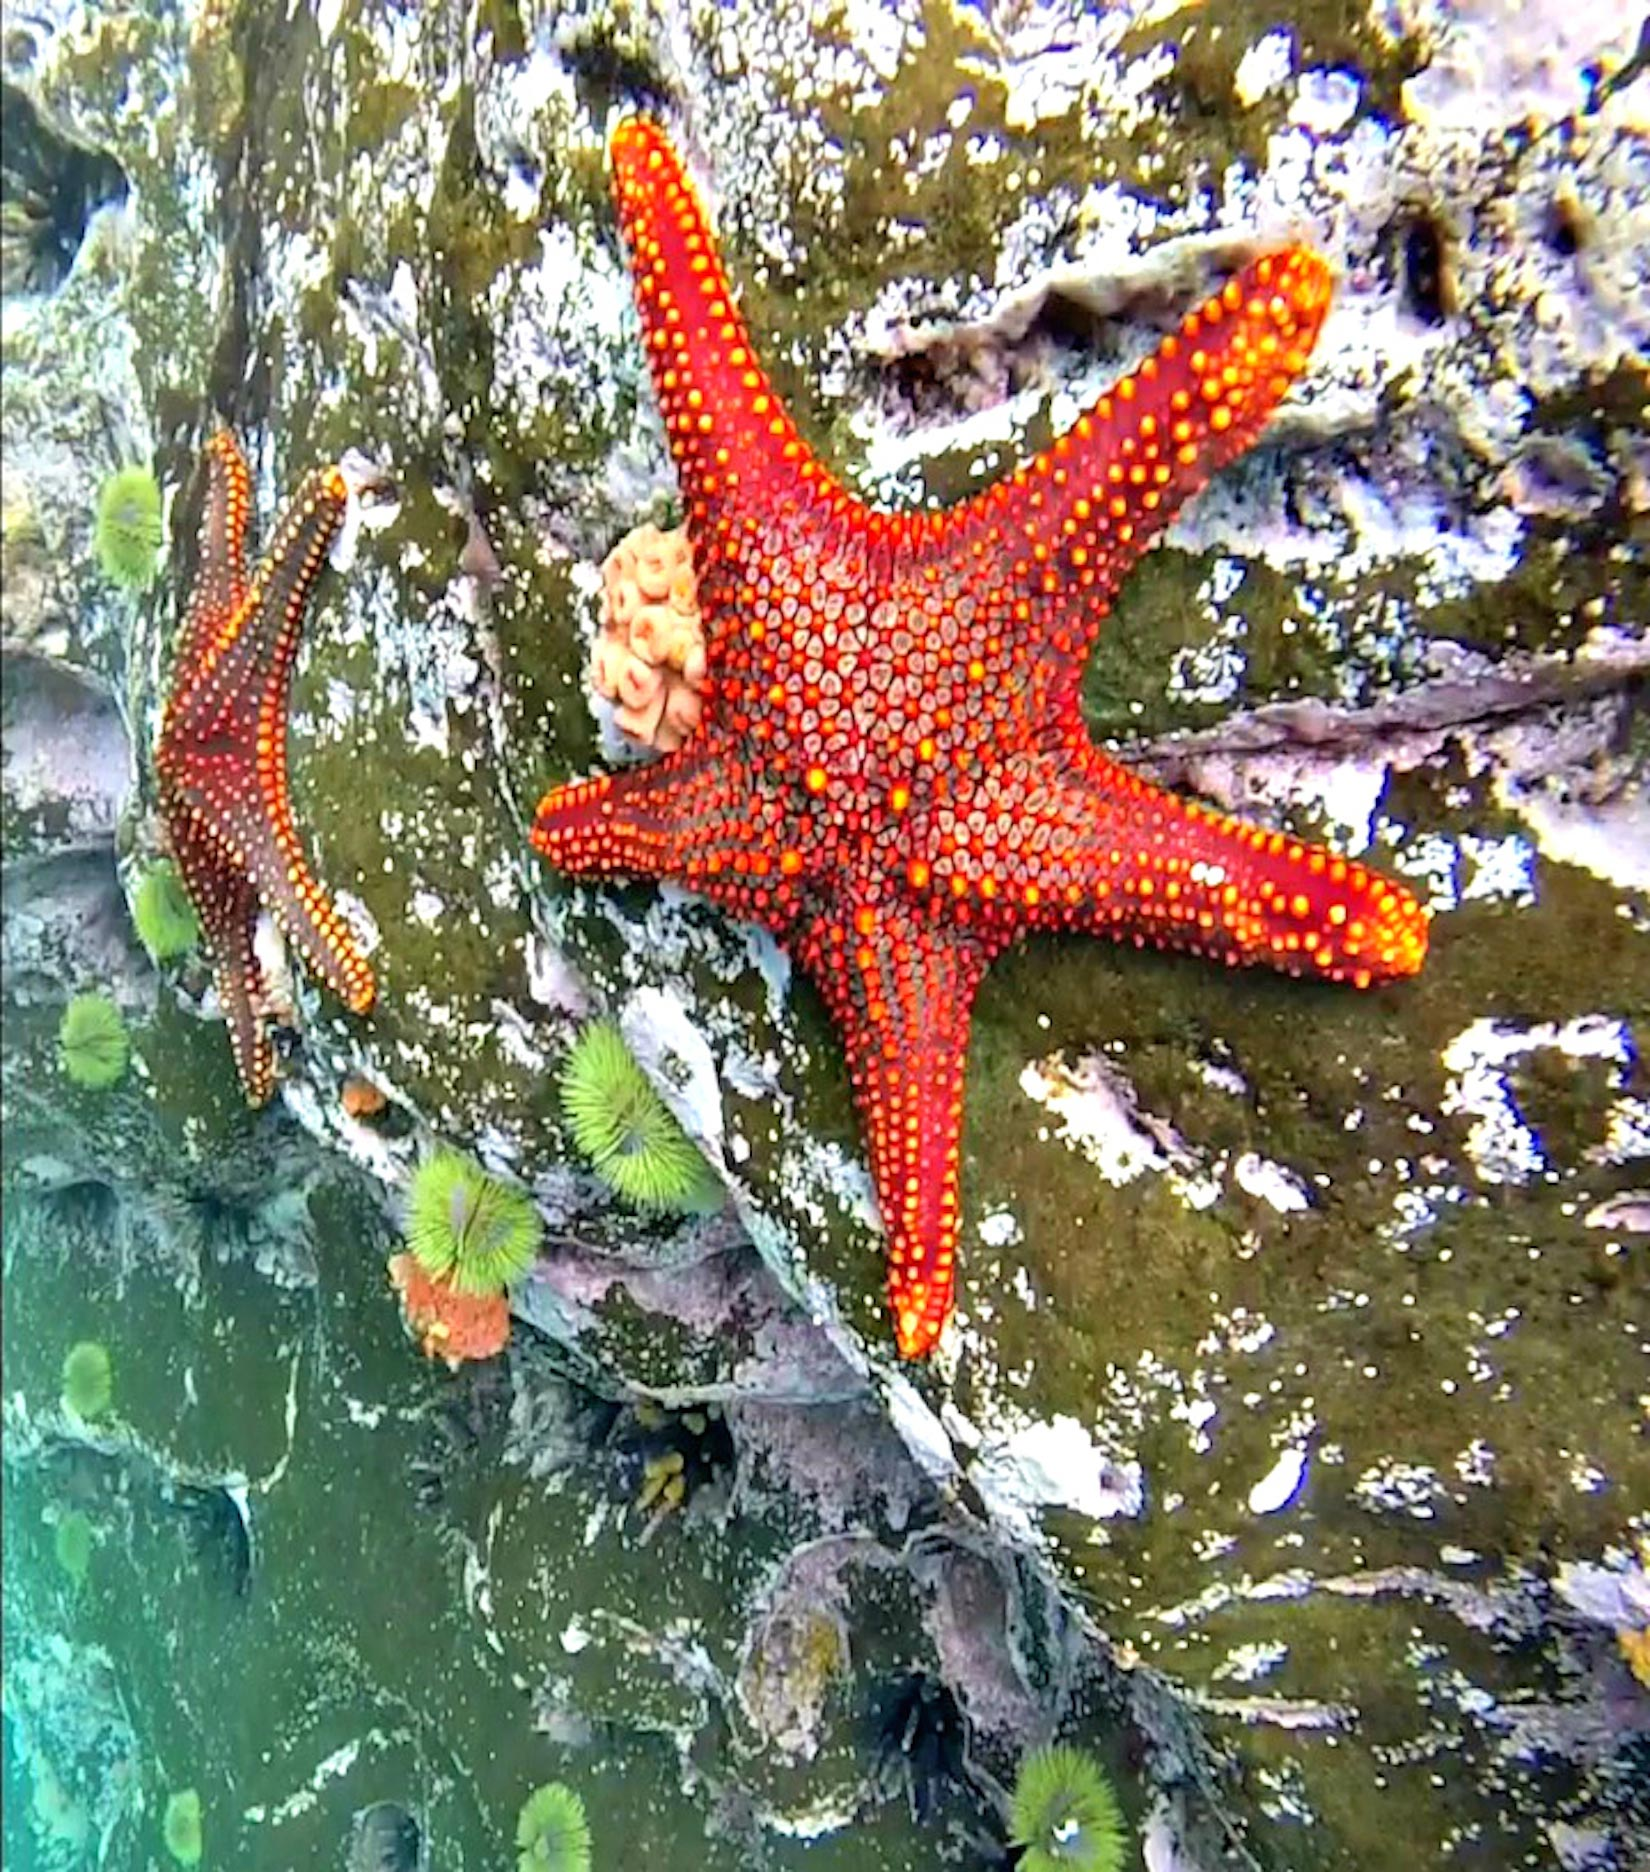 starfish on a rock in the ocean